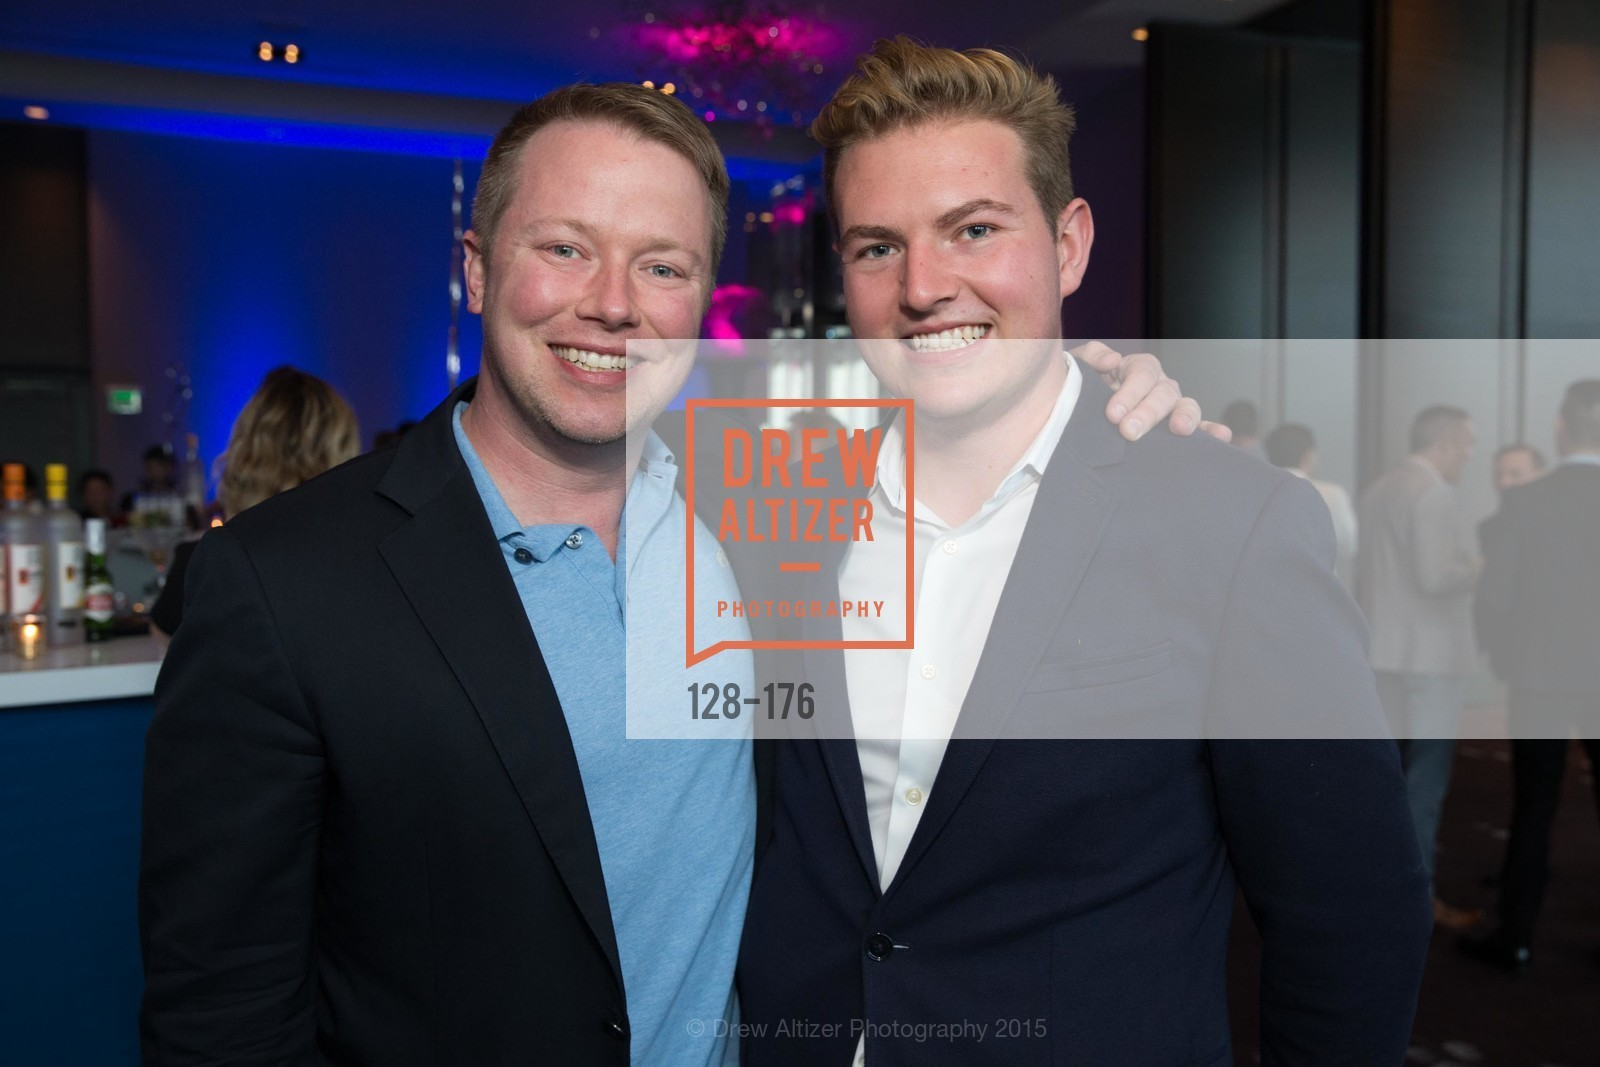 Curtis Sparrer, Brice Spaner, VIP Pride Celebration 2015, St. Regis, June 18th, 2015,Drew Altizer, Drew Altizer Photography, full-service agency, private events, San Francisco photographer, photographer california